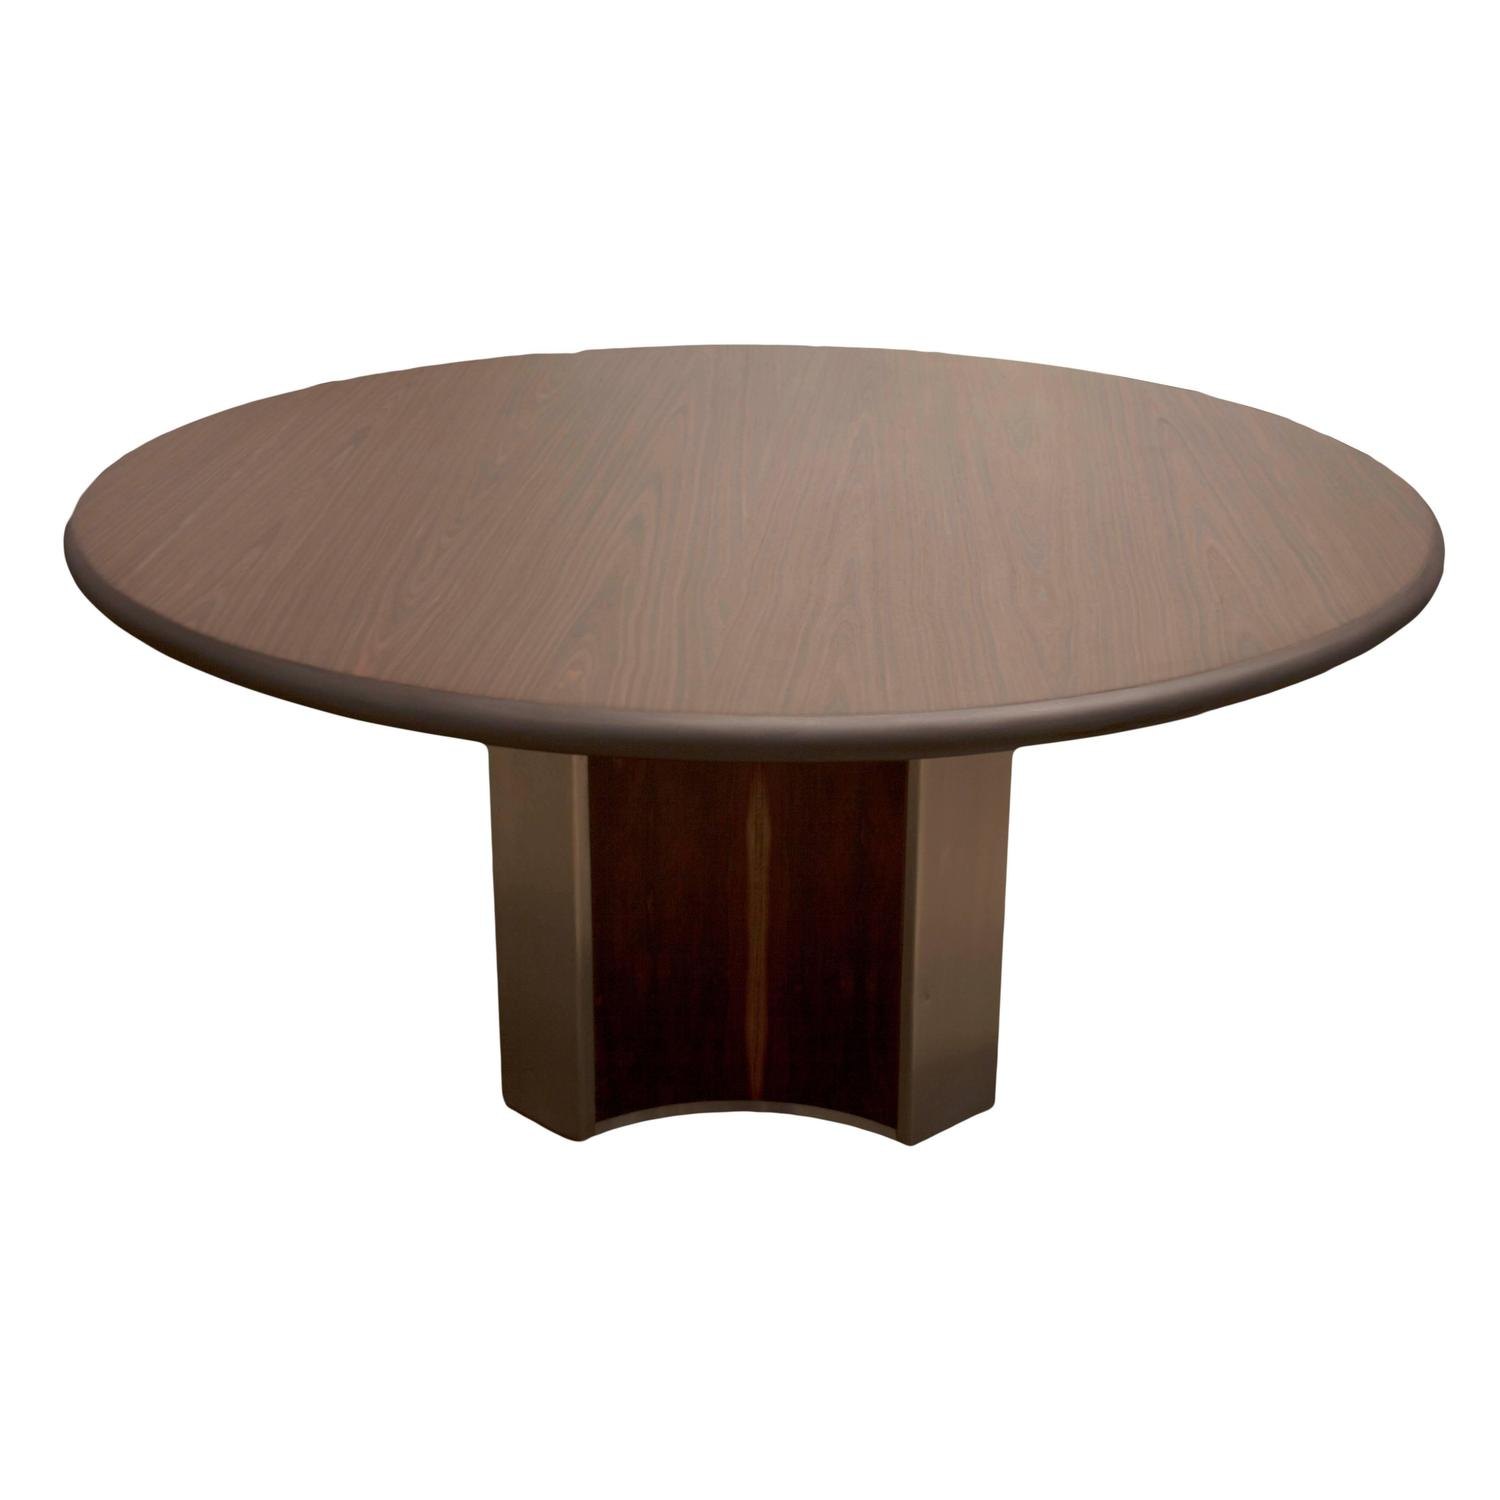 Get Free High Quality HD Wallpapers Dining Room Tables For Sale In Los Angeles Ca